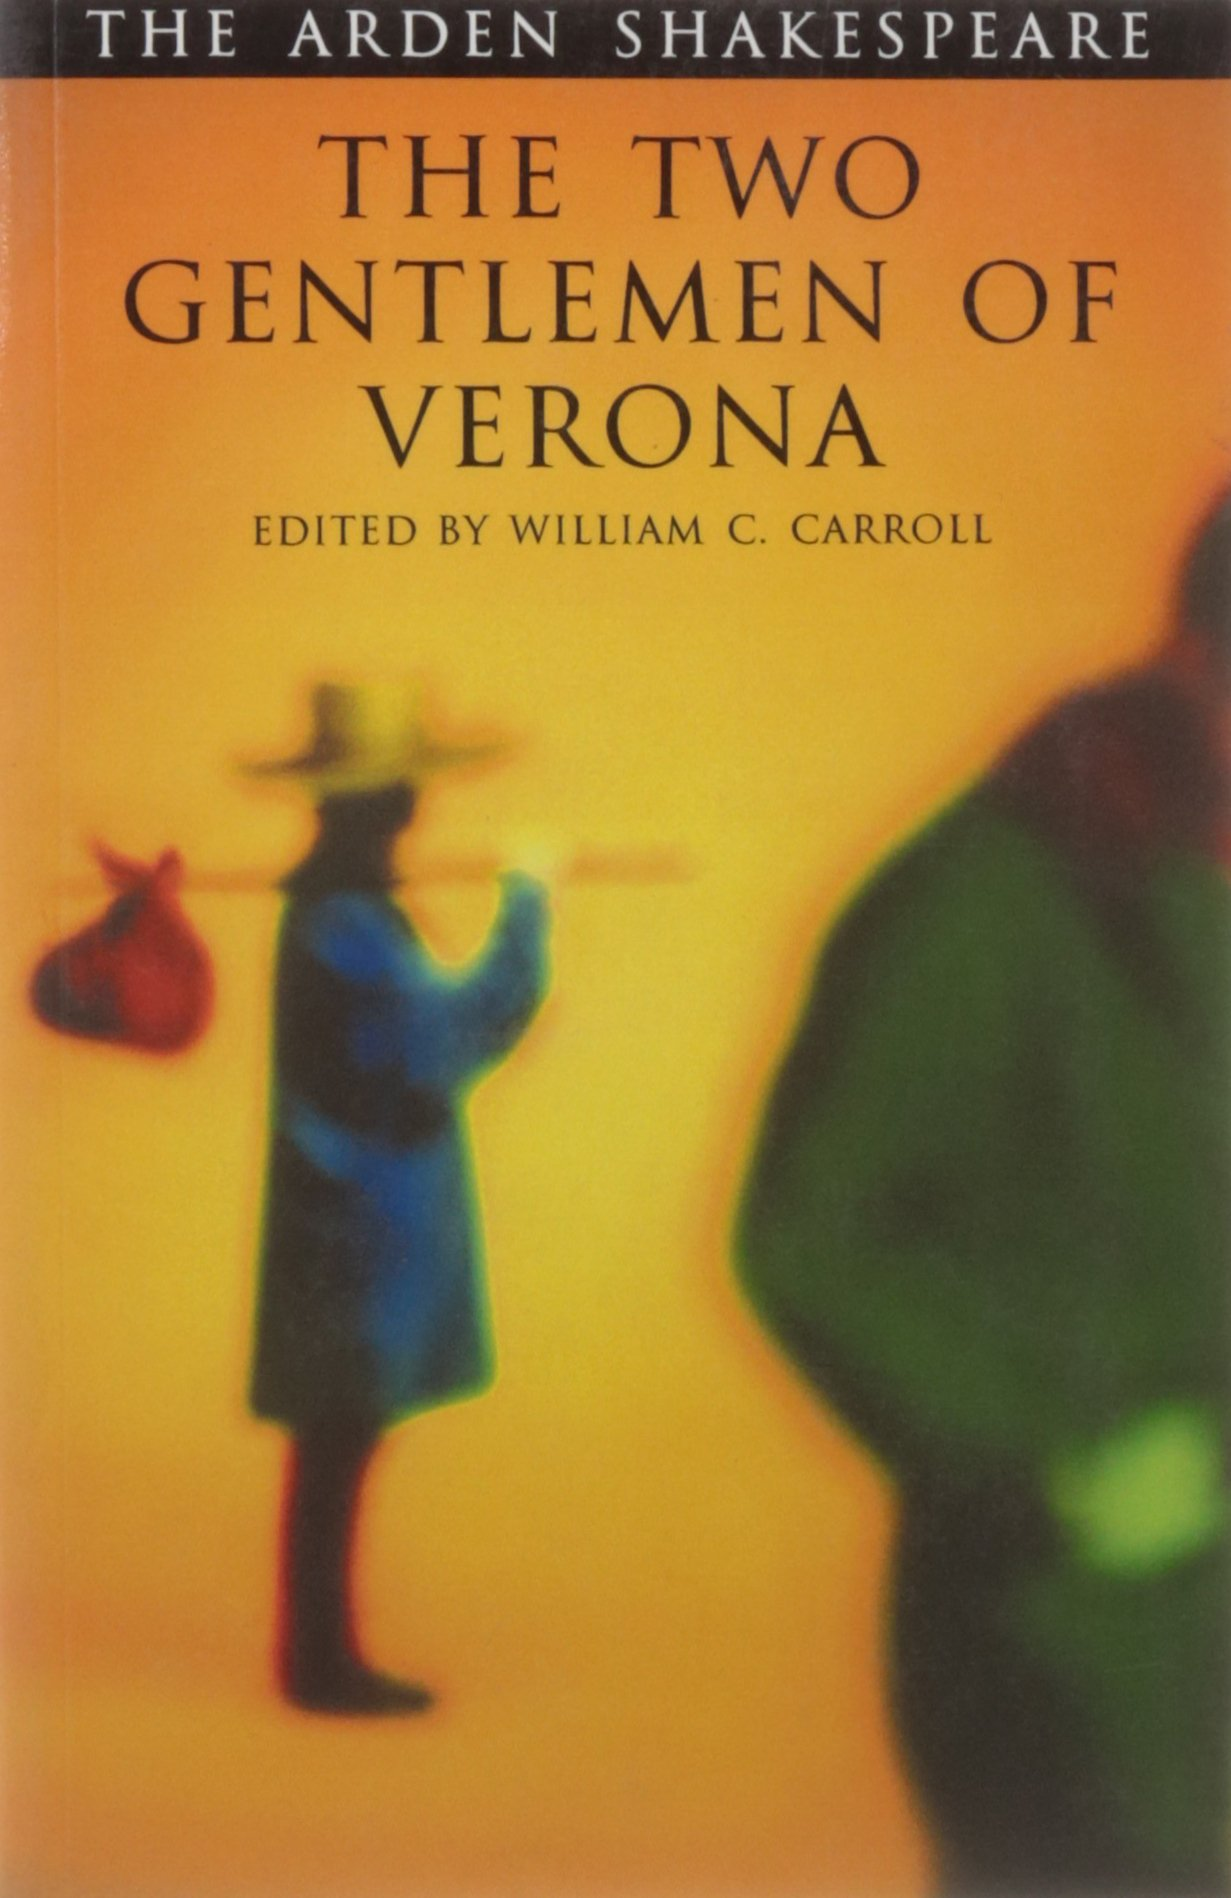 com the two gentlemen of verona arden shakespeare third com the two gentlemen of verona arden shakespeare third series 9781903436950 william shakespeare william carroll books